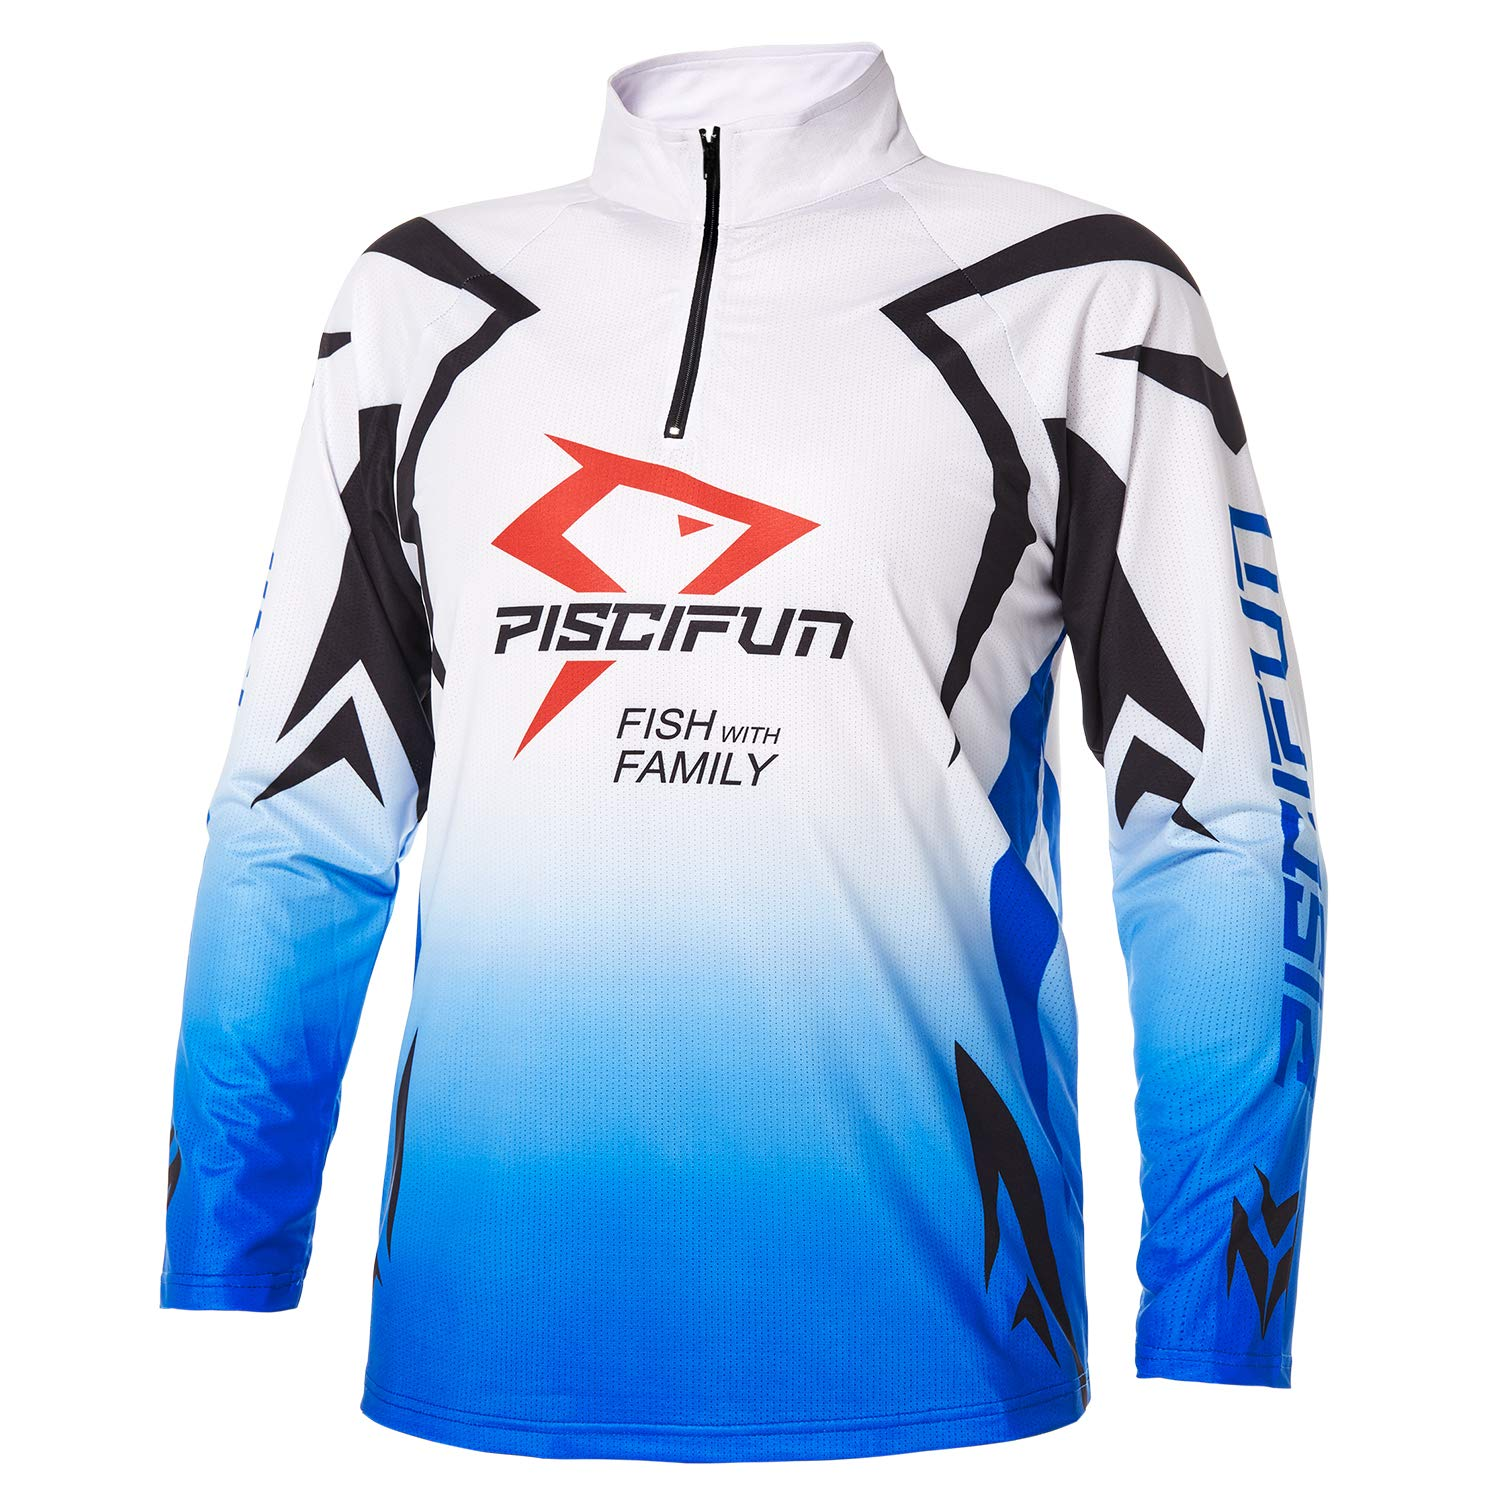 7854dd0502a855 Piscifun Performance UPF Long Sleeve Fishing T-Shirt-Sun Protection  Clothing Fishing Jersey M L